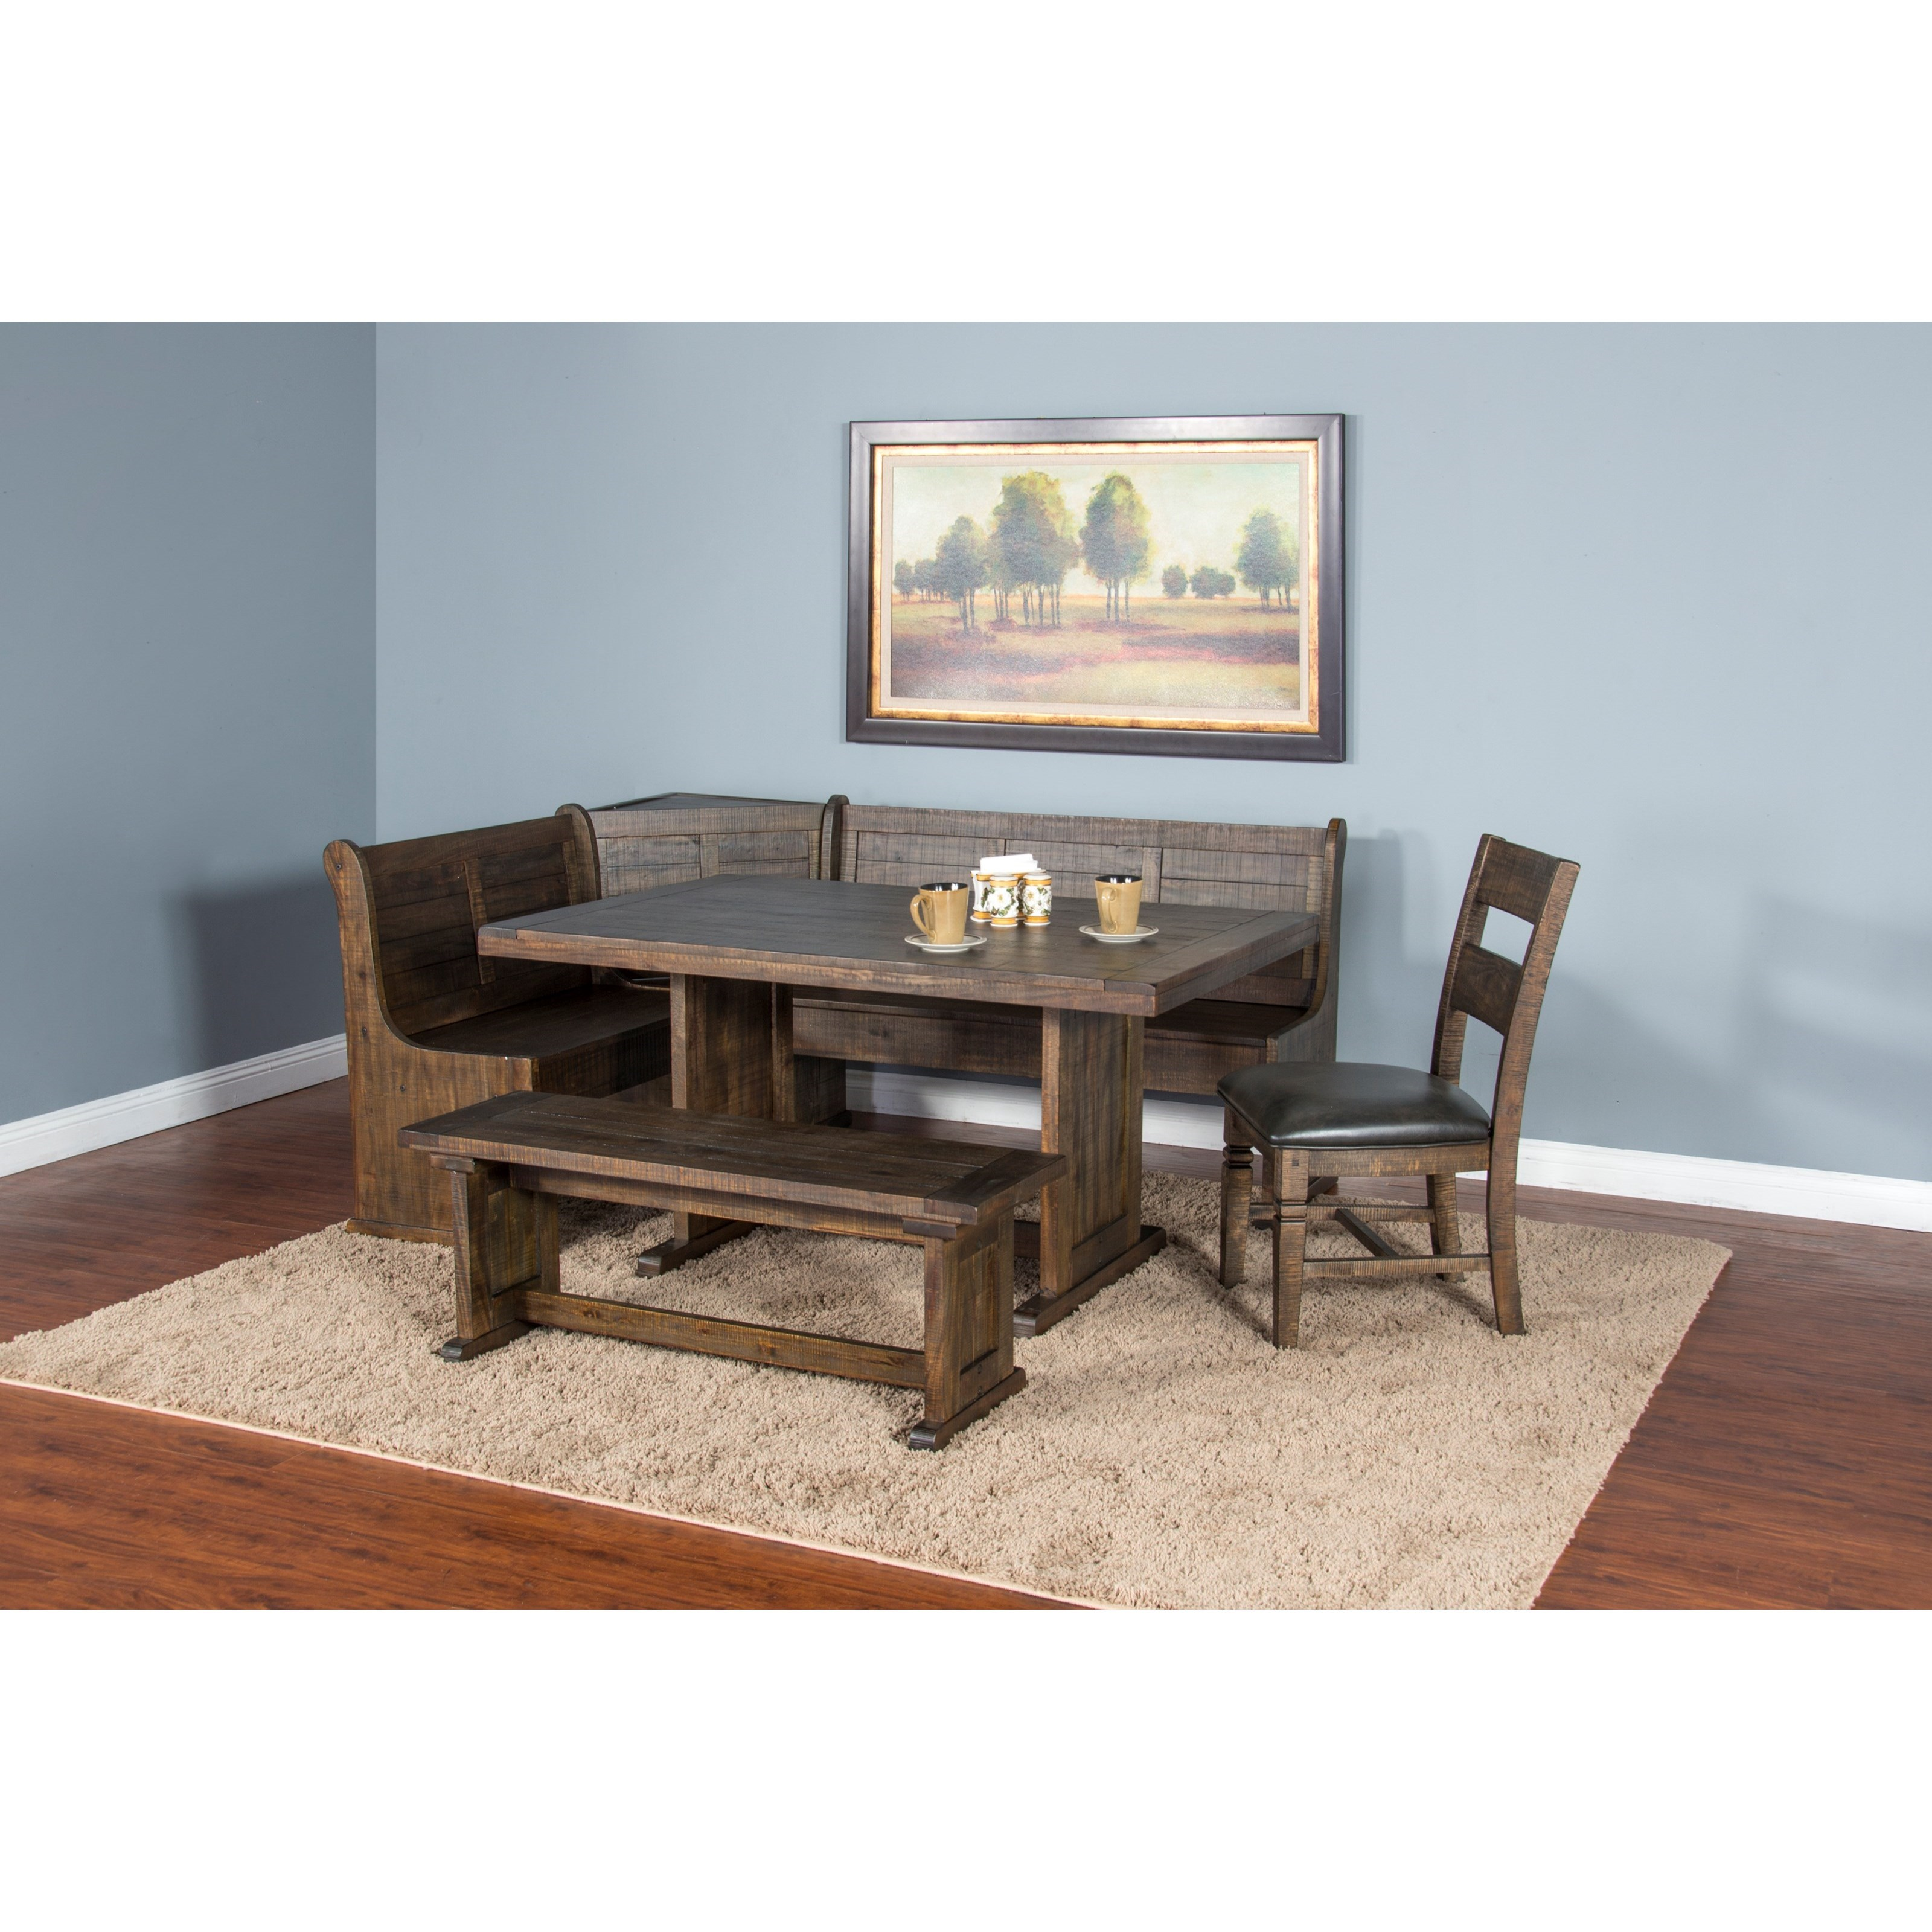 Sunny designs homestead 0113tl t rustic style table with for Homestead furniture and appliances